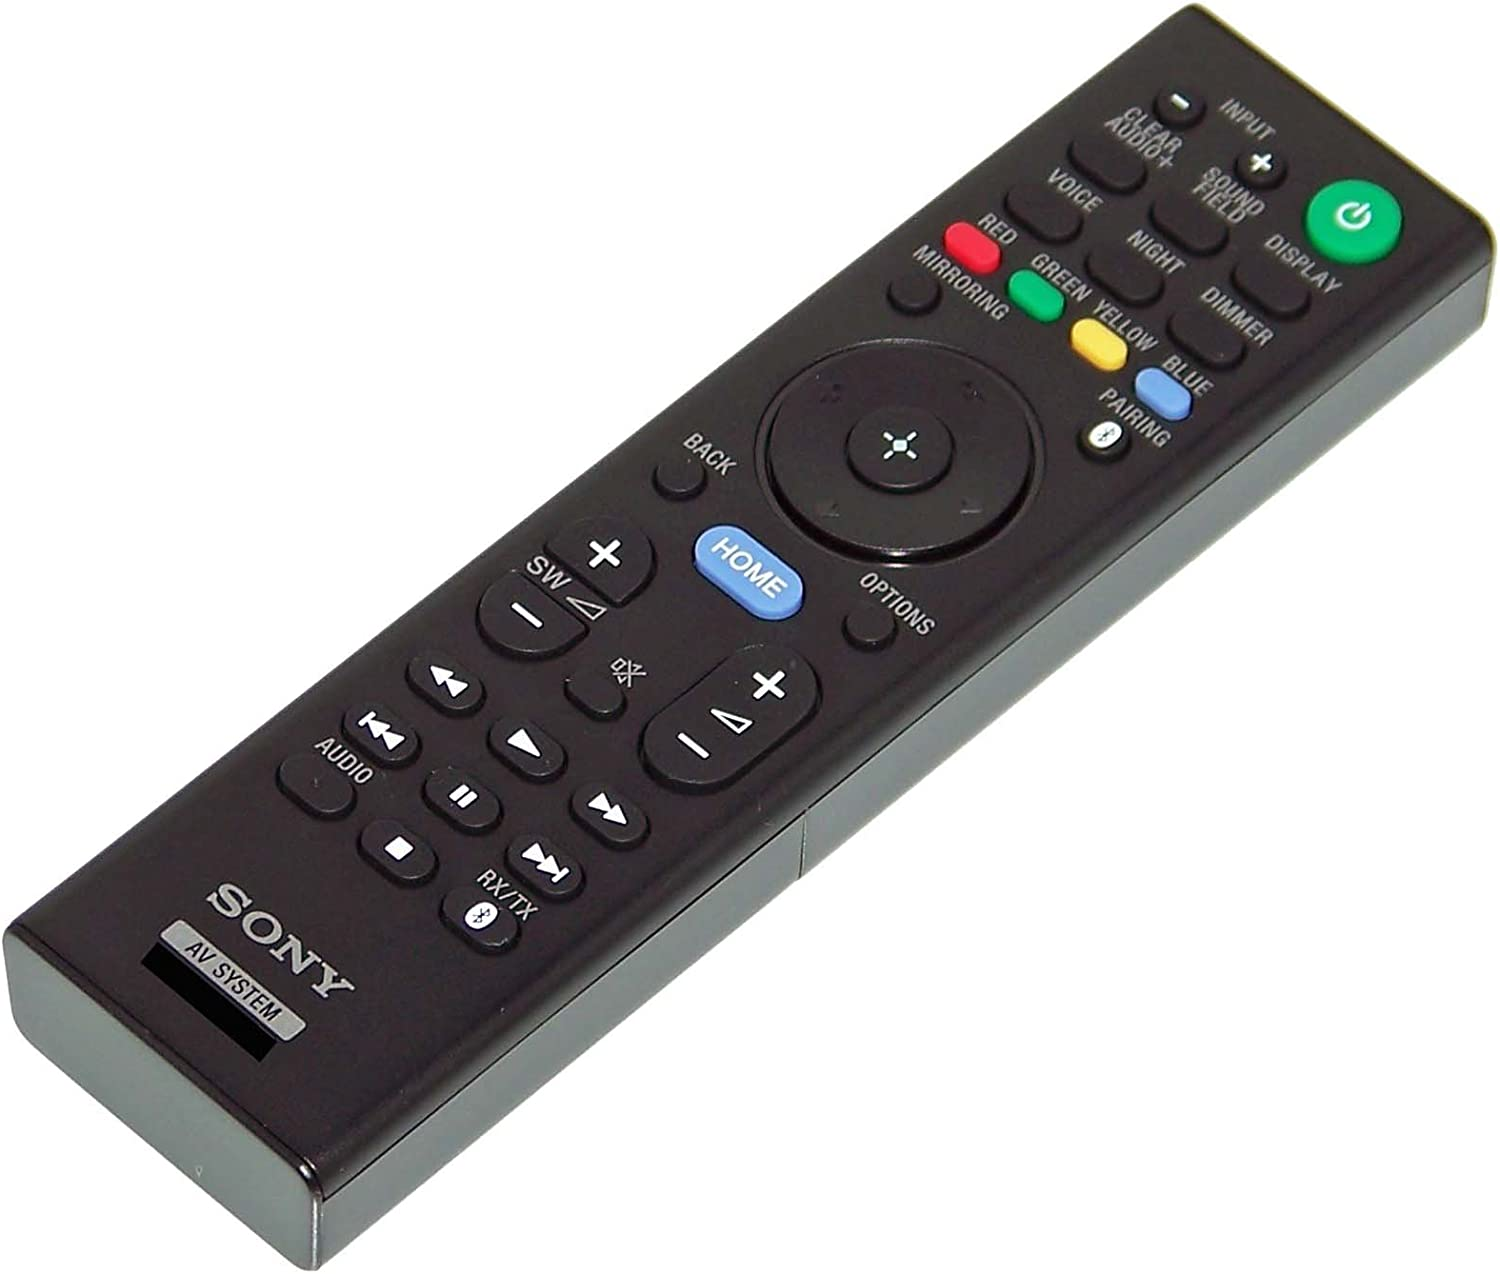 HTNT3 OEM Sony Remote Control Shipped with HT-NT3